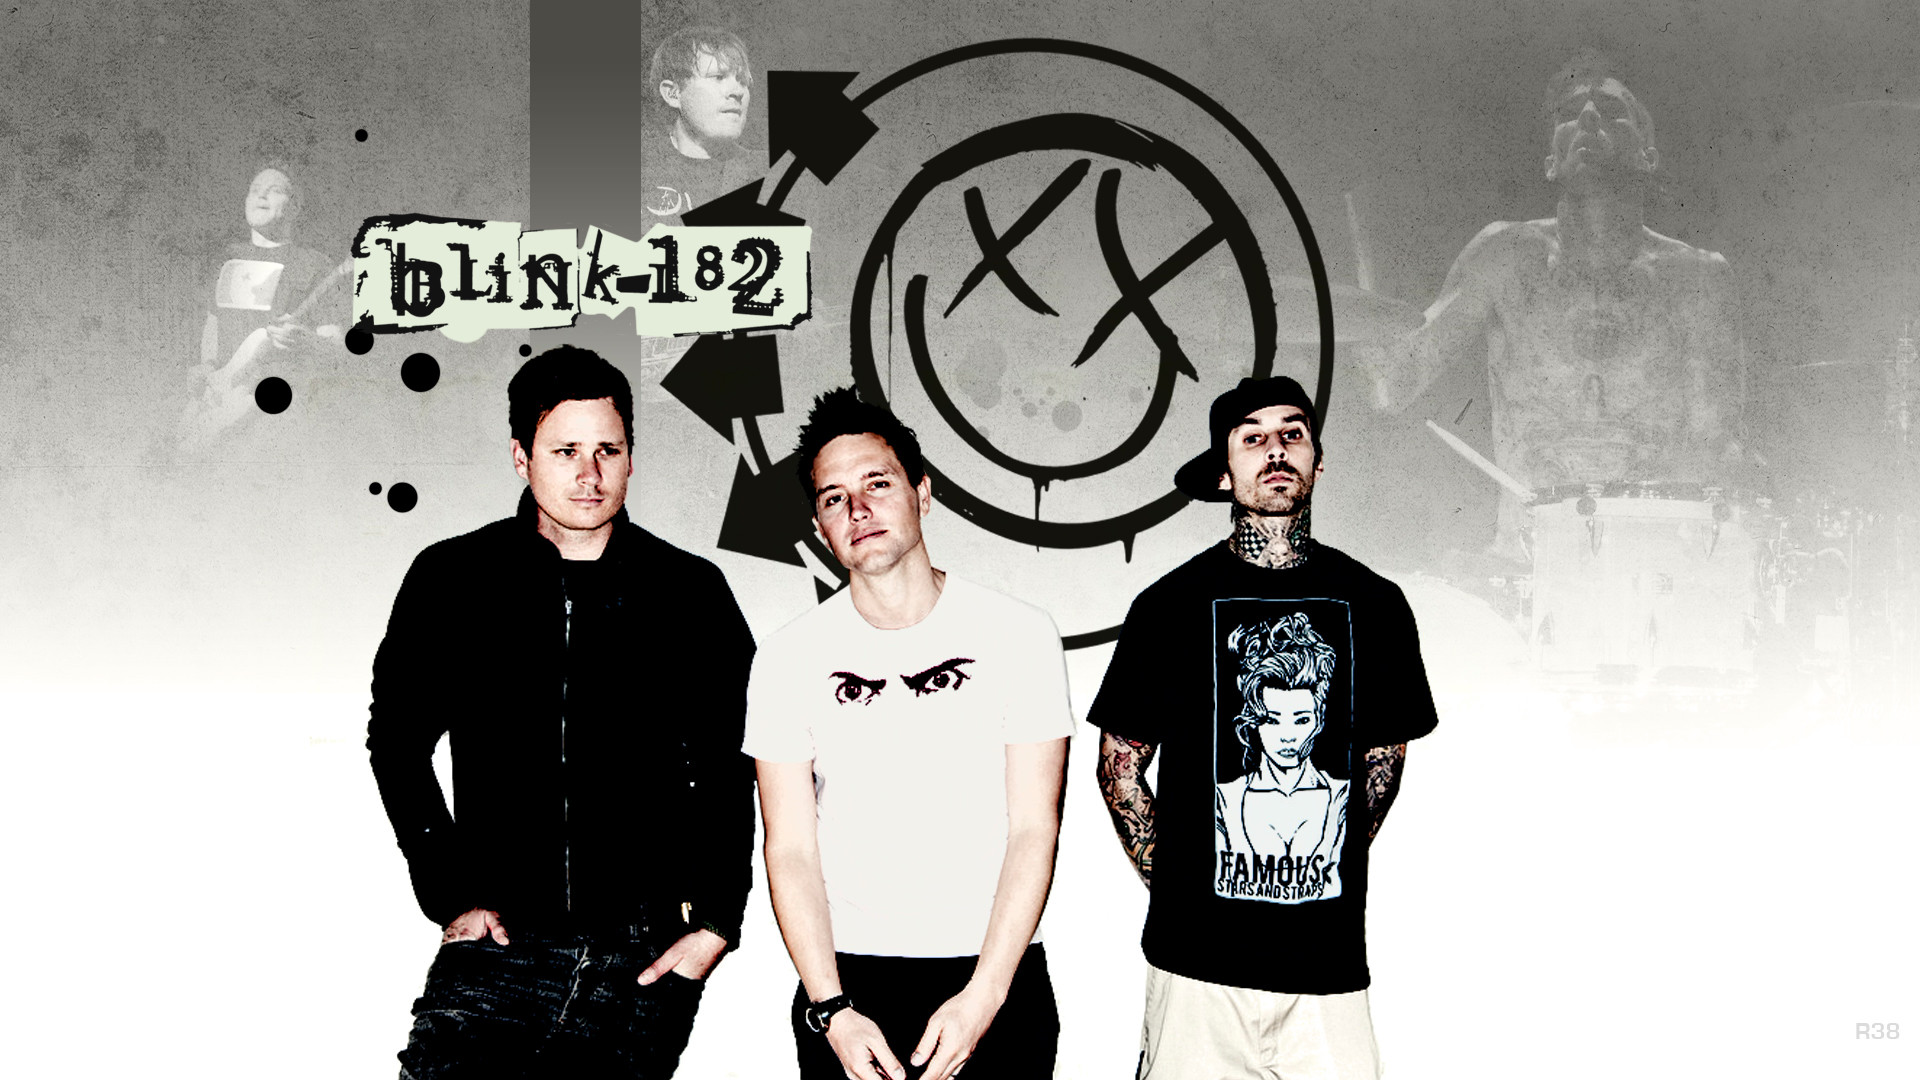 1920x1080 Blink Desktop Wallpapers Group 1920×1080 Blink 182 Wallpaper (37 Wallpapers)  | Adorable